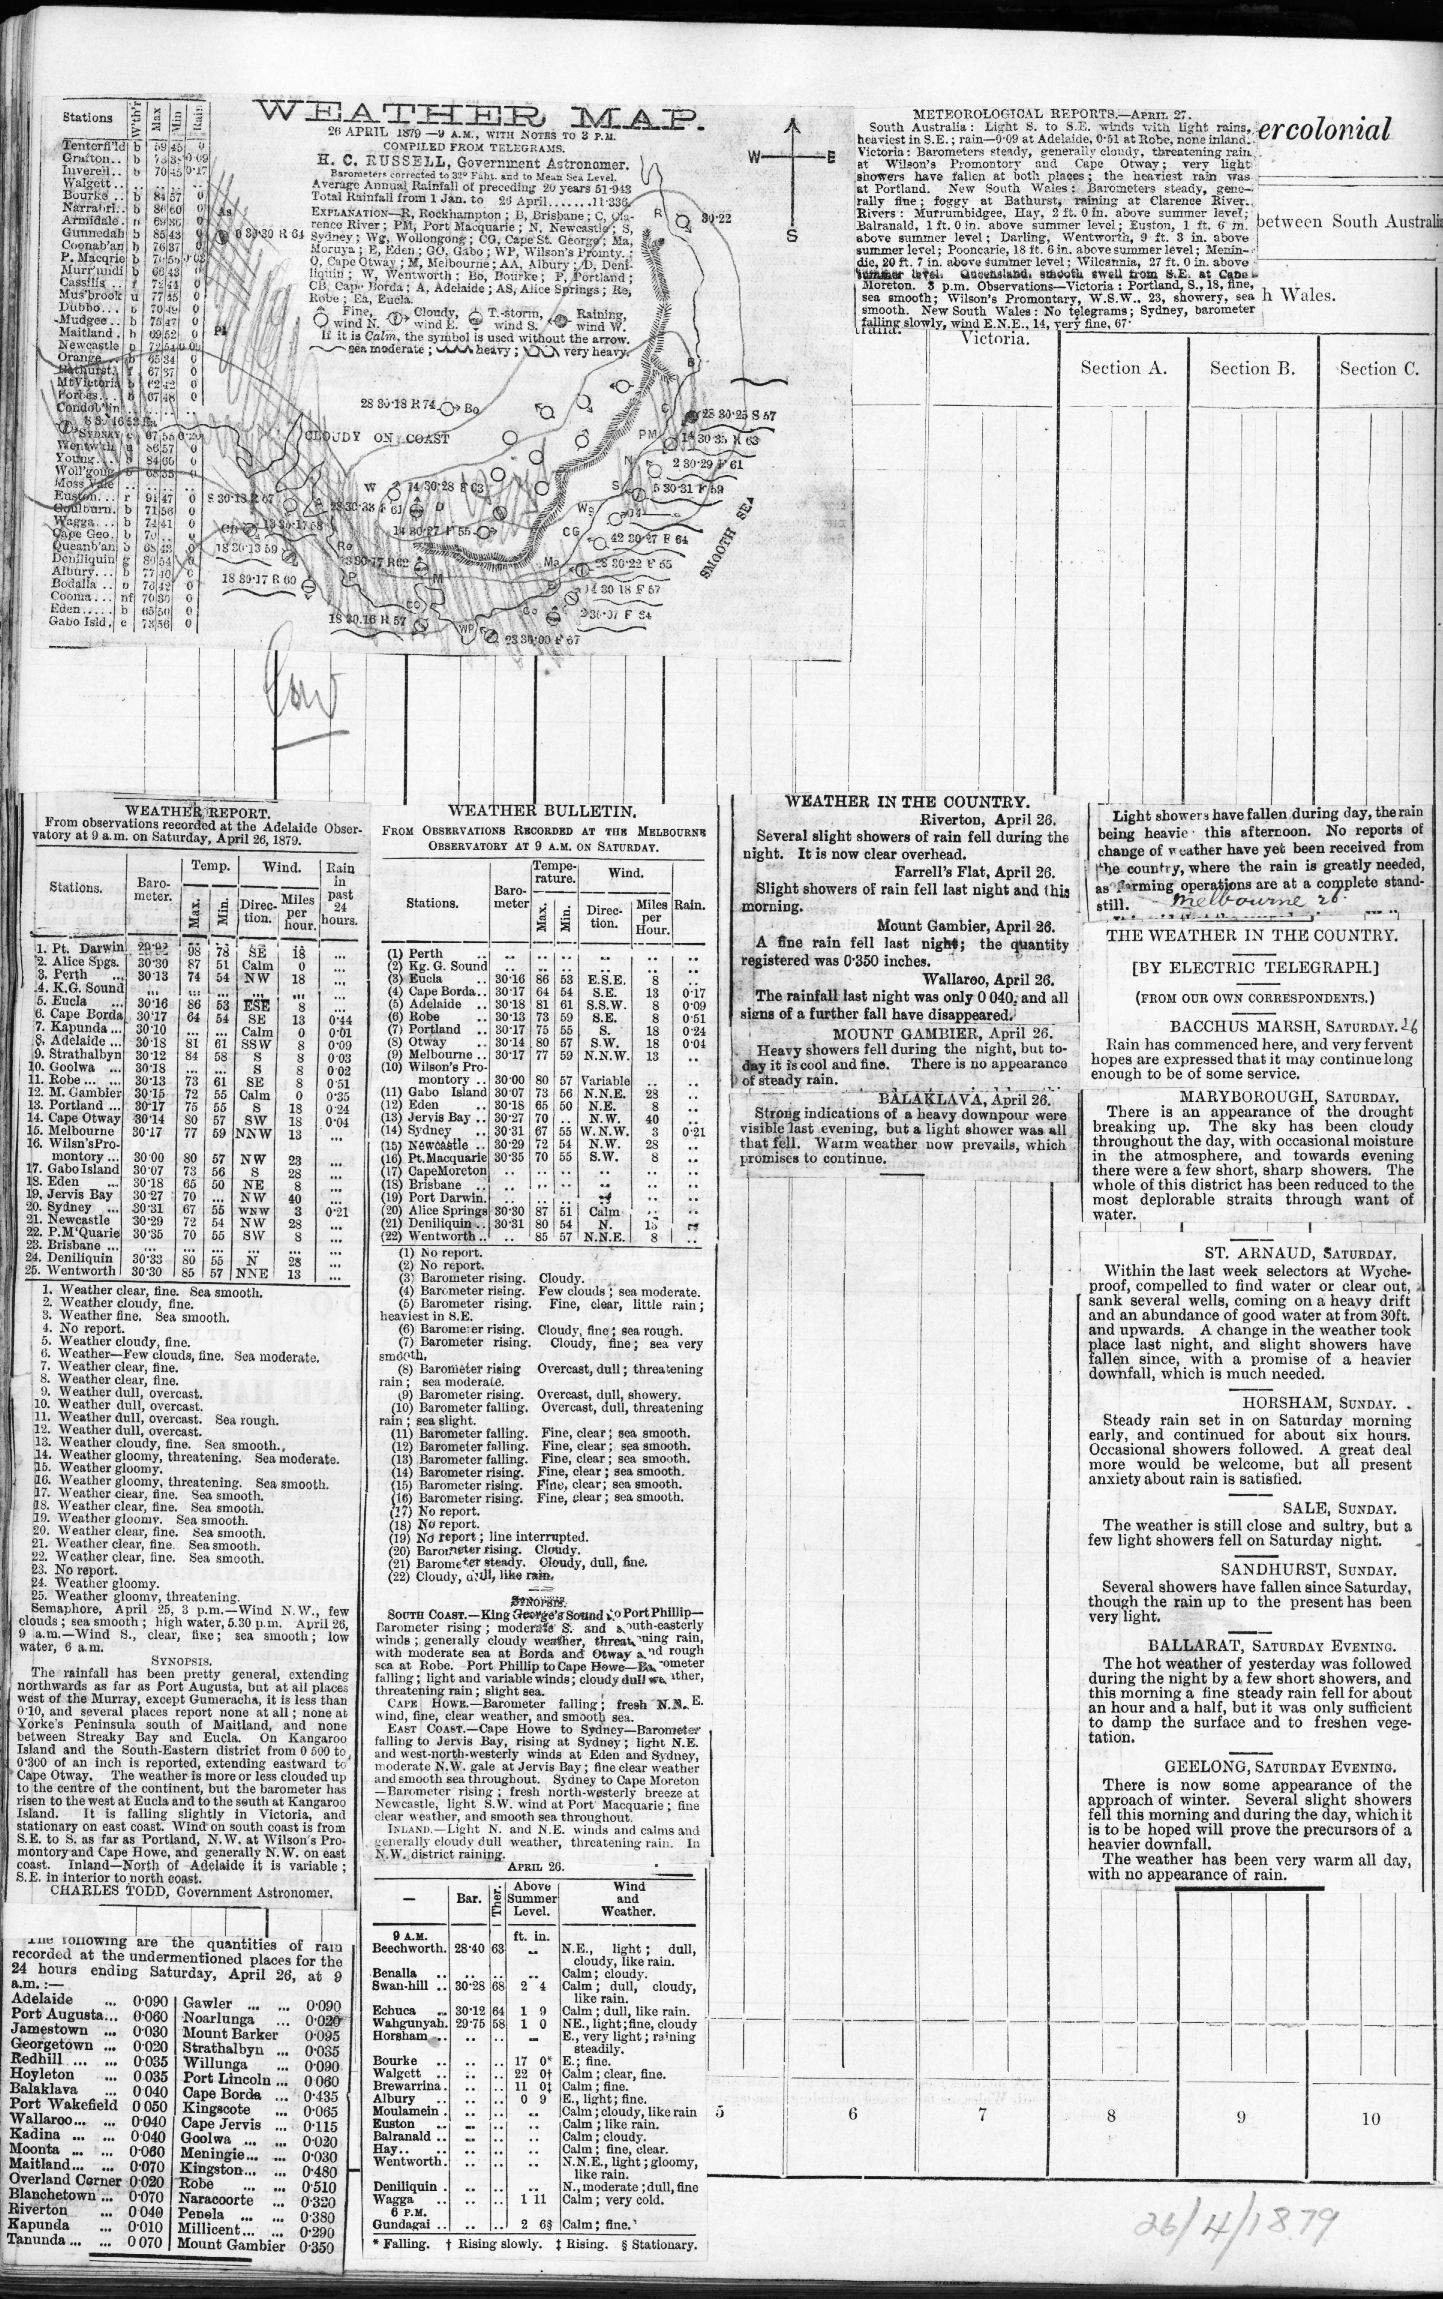 18790426t01 Weather map